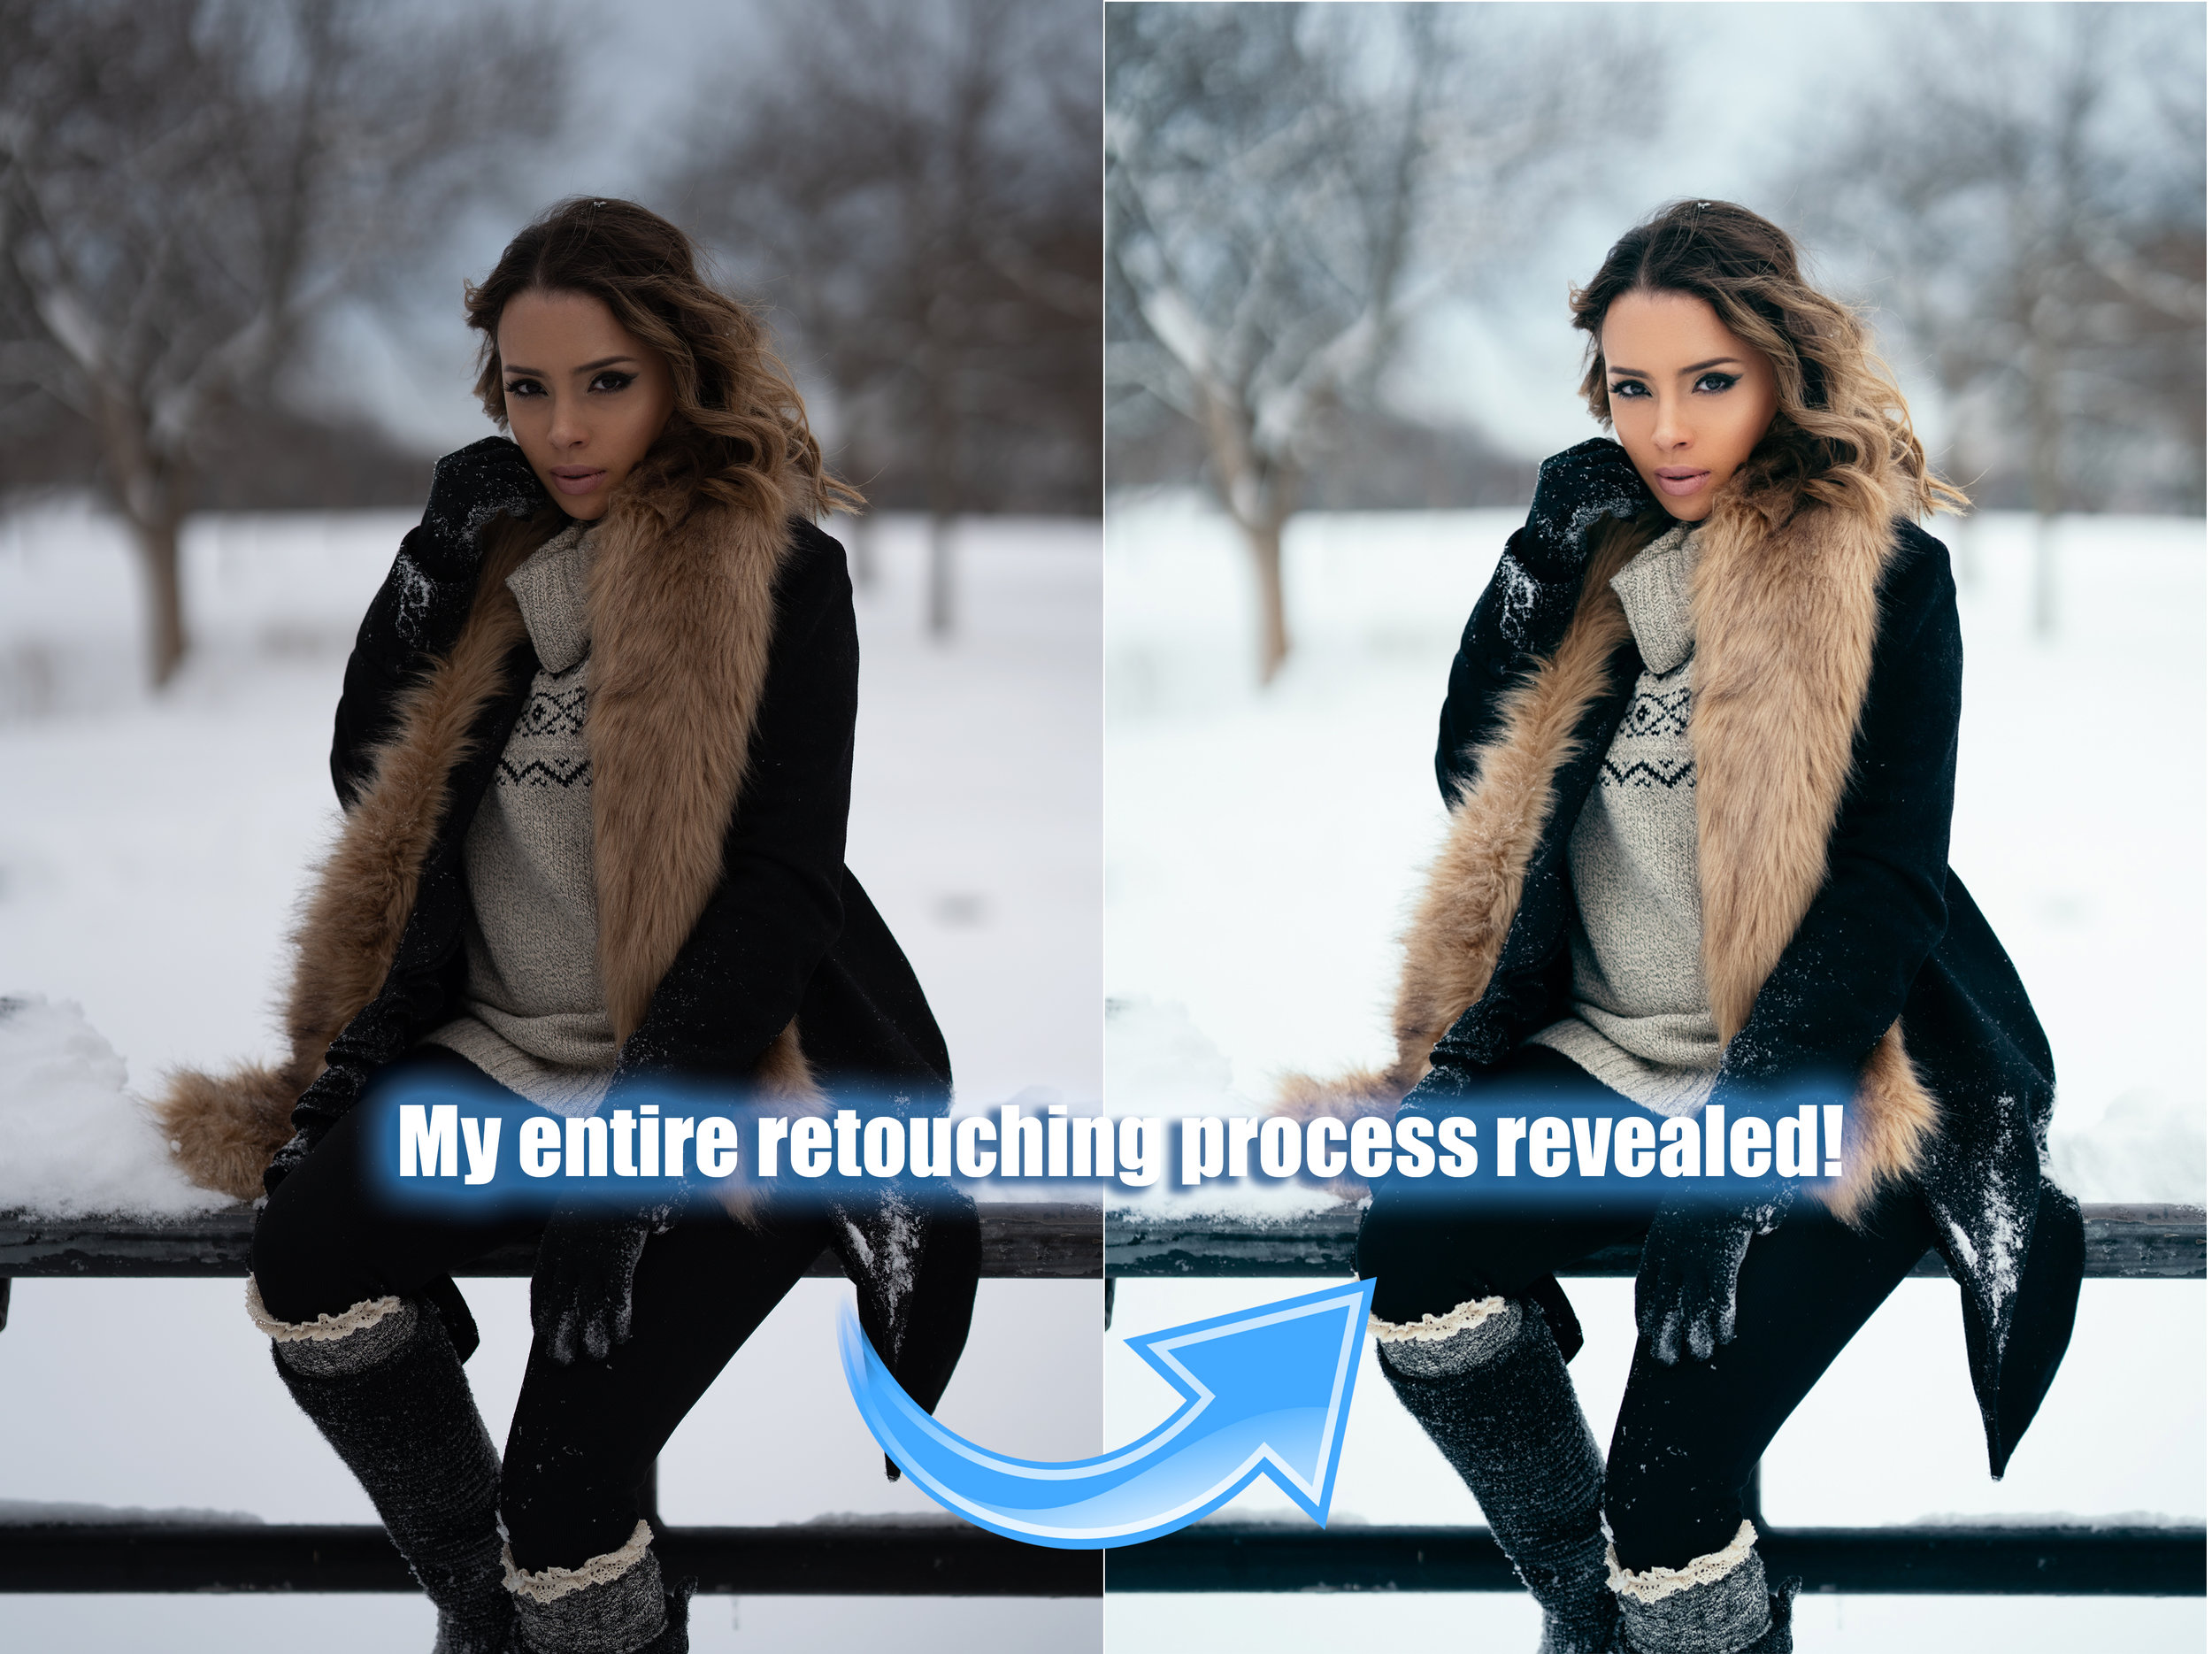 From start to finish. No secrets! You will see my entire retouching process! - yep, all of it!